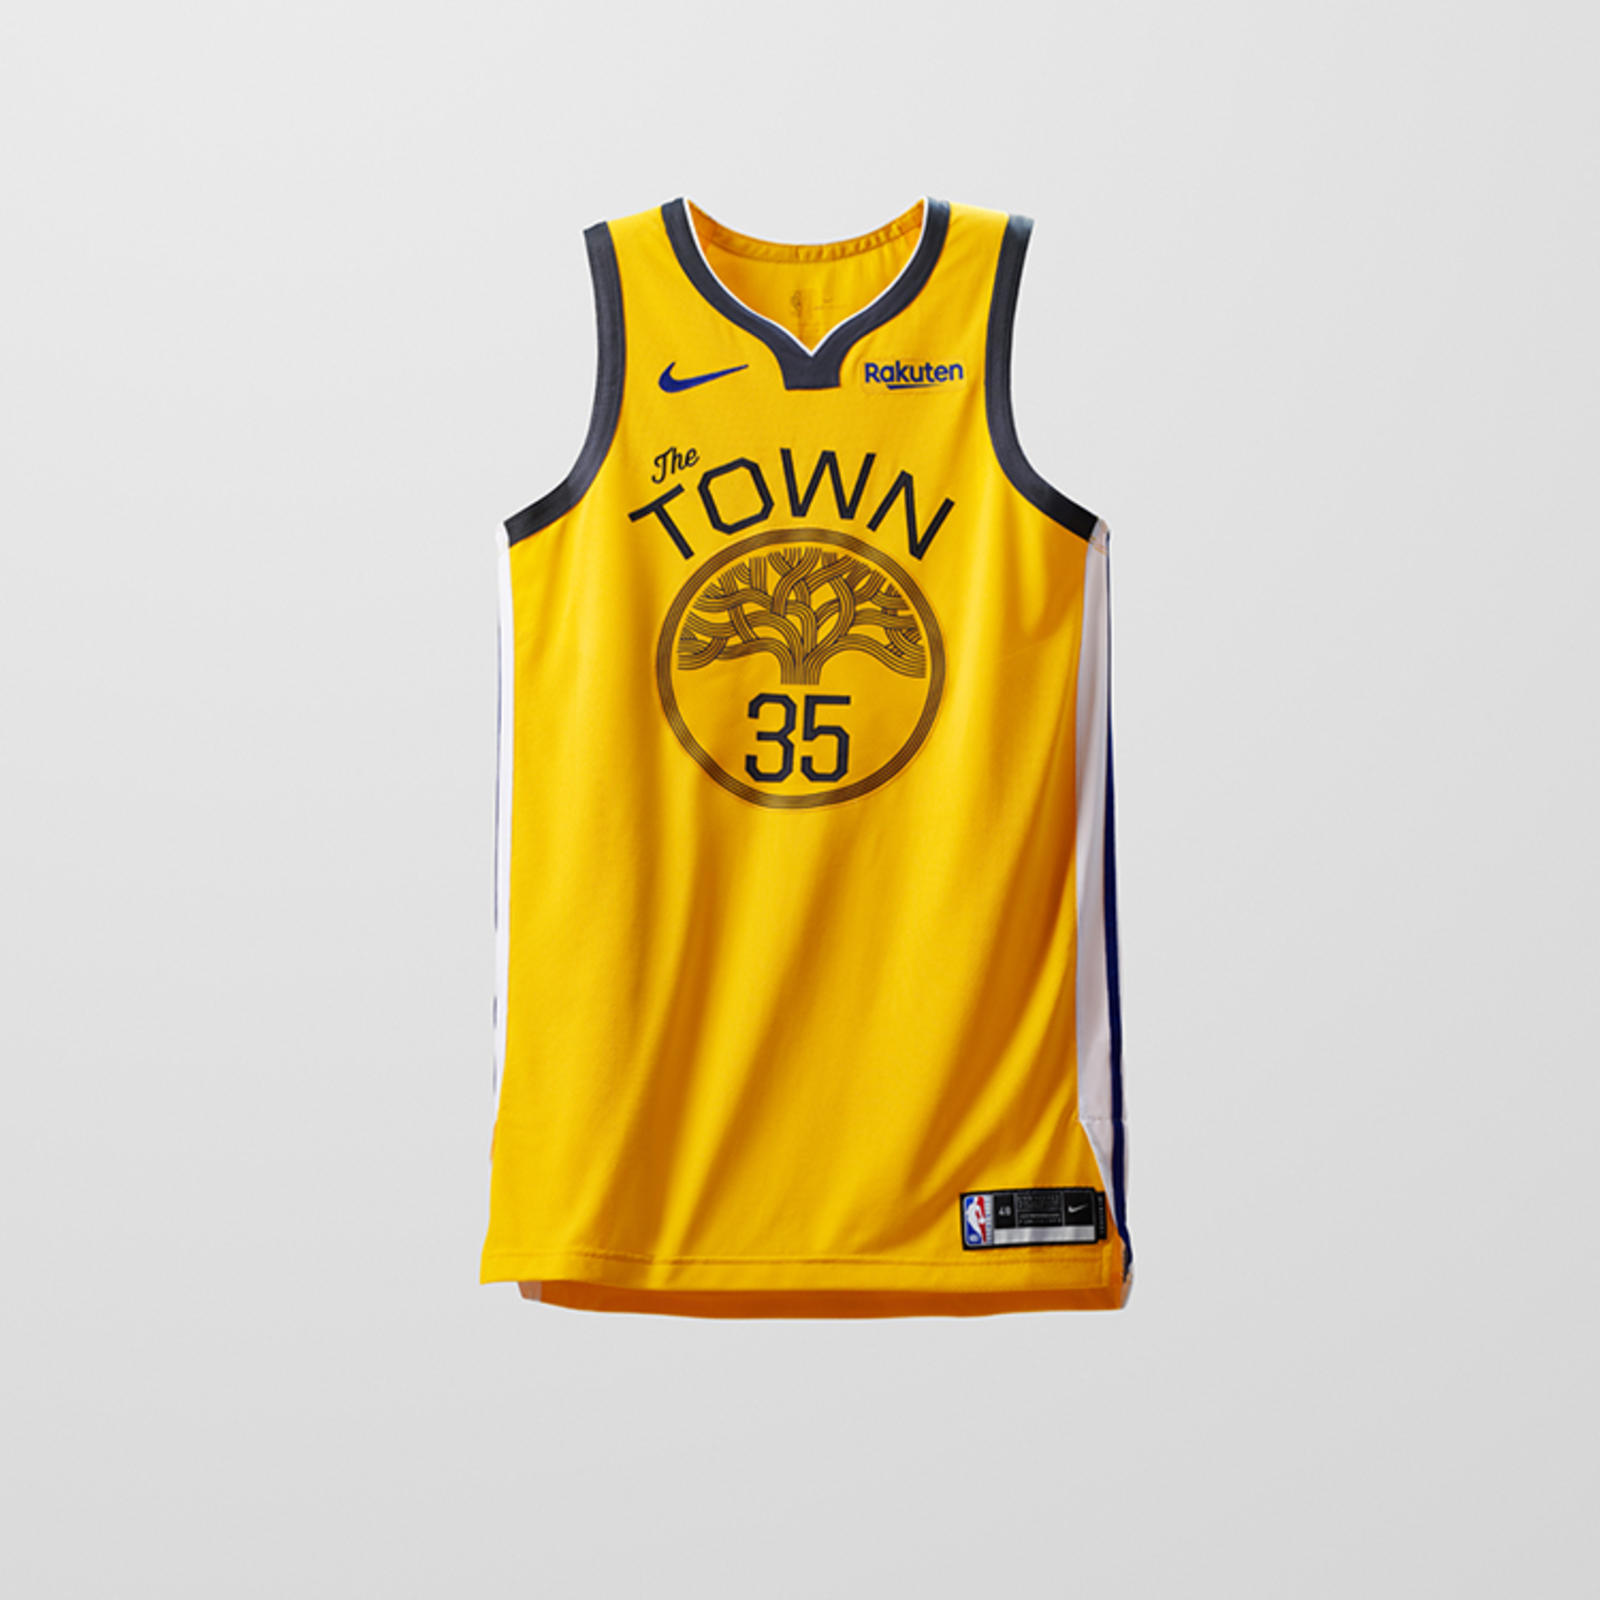 Introducing the Nike x NBA EARNED Edition Uniforms 13